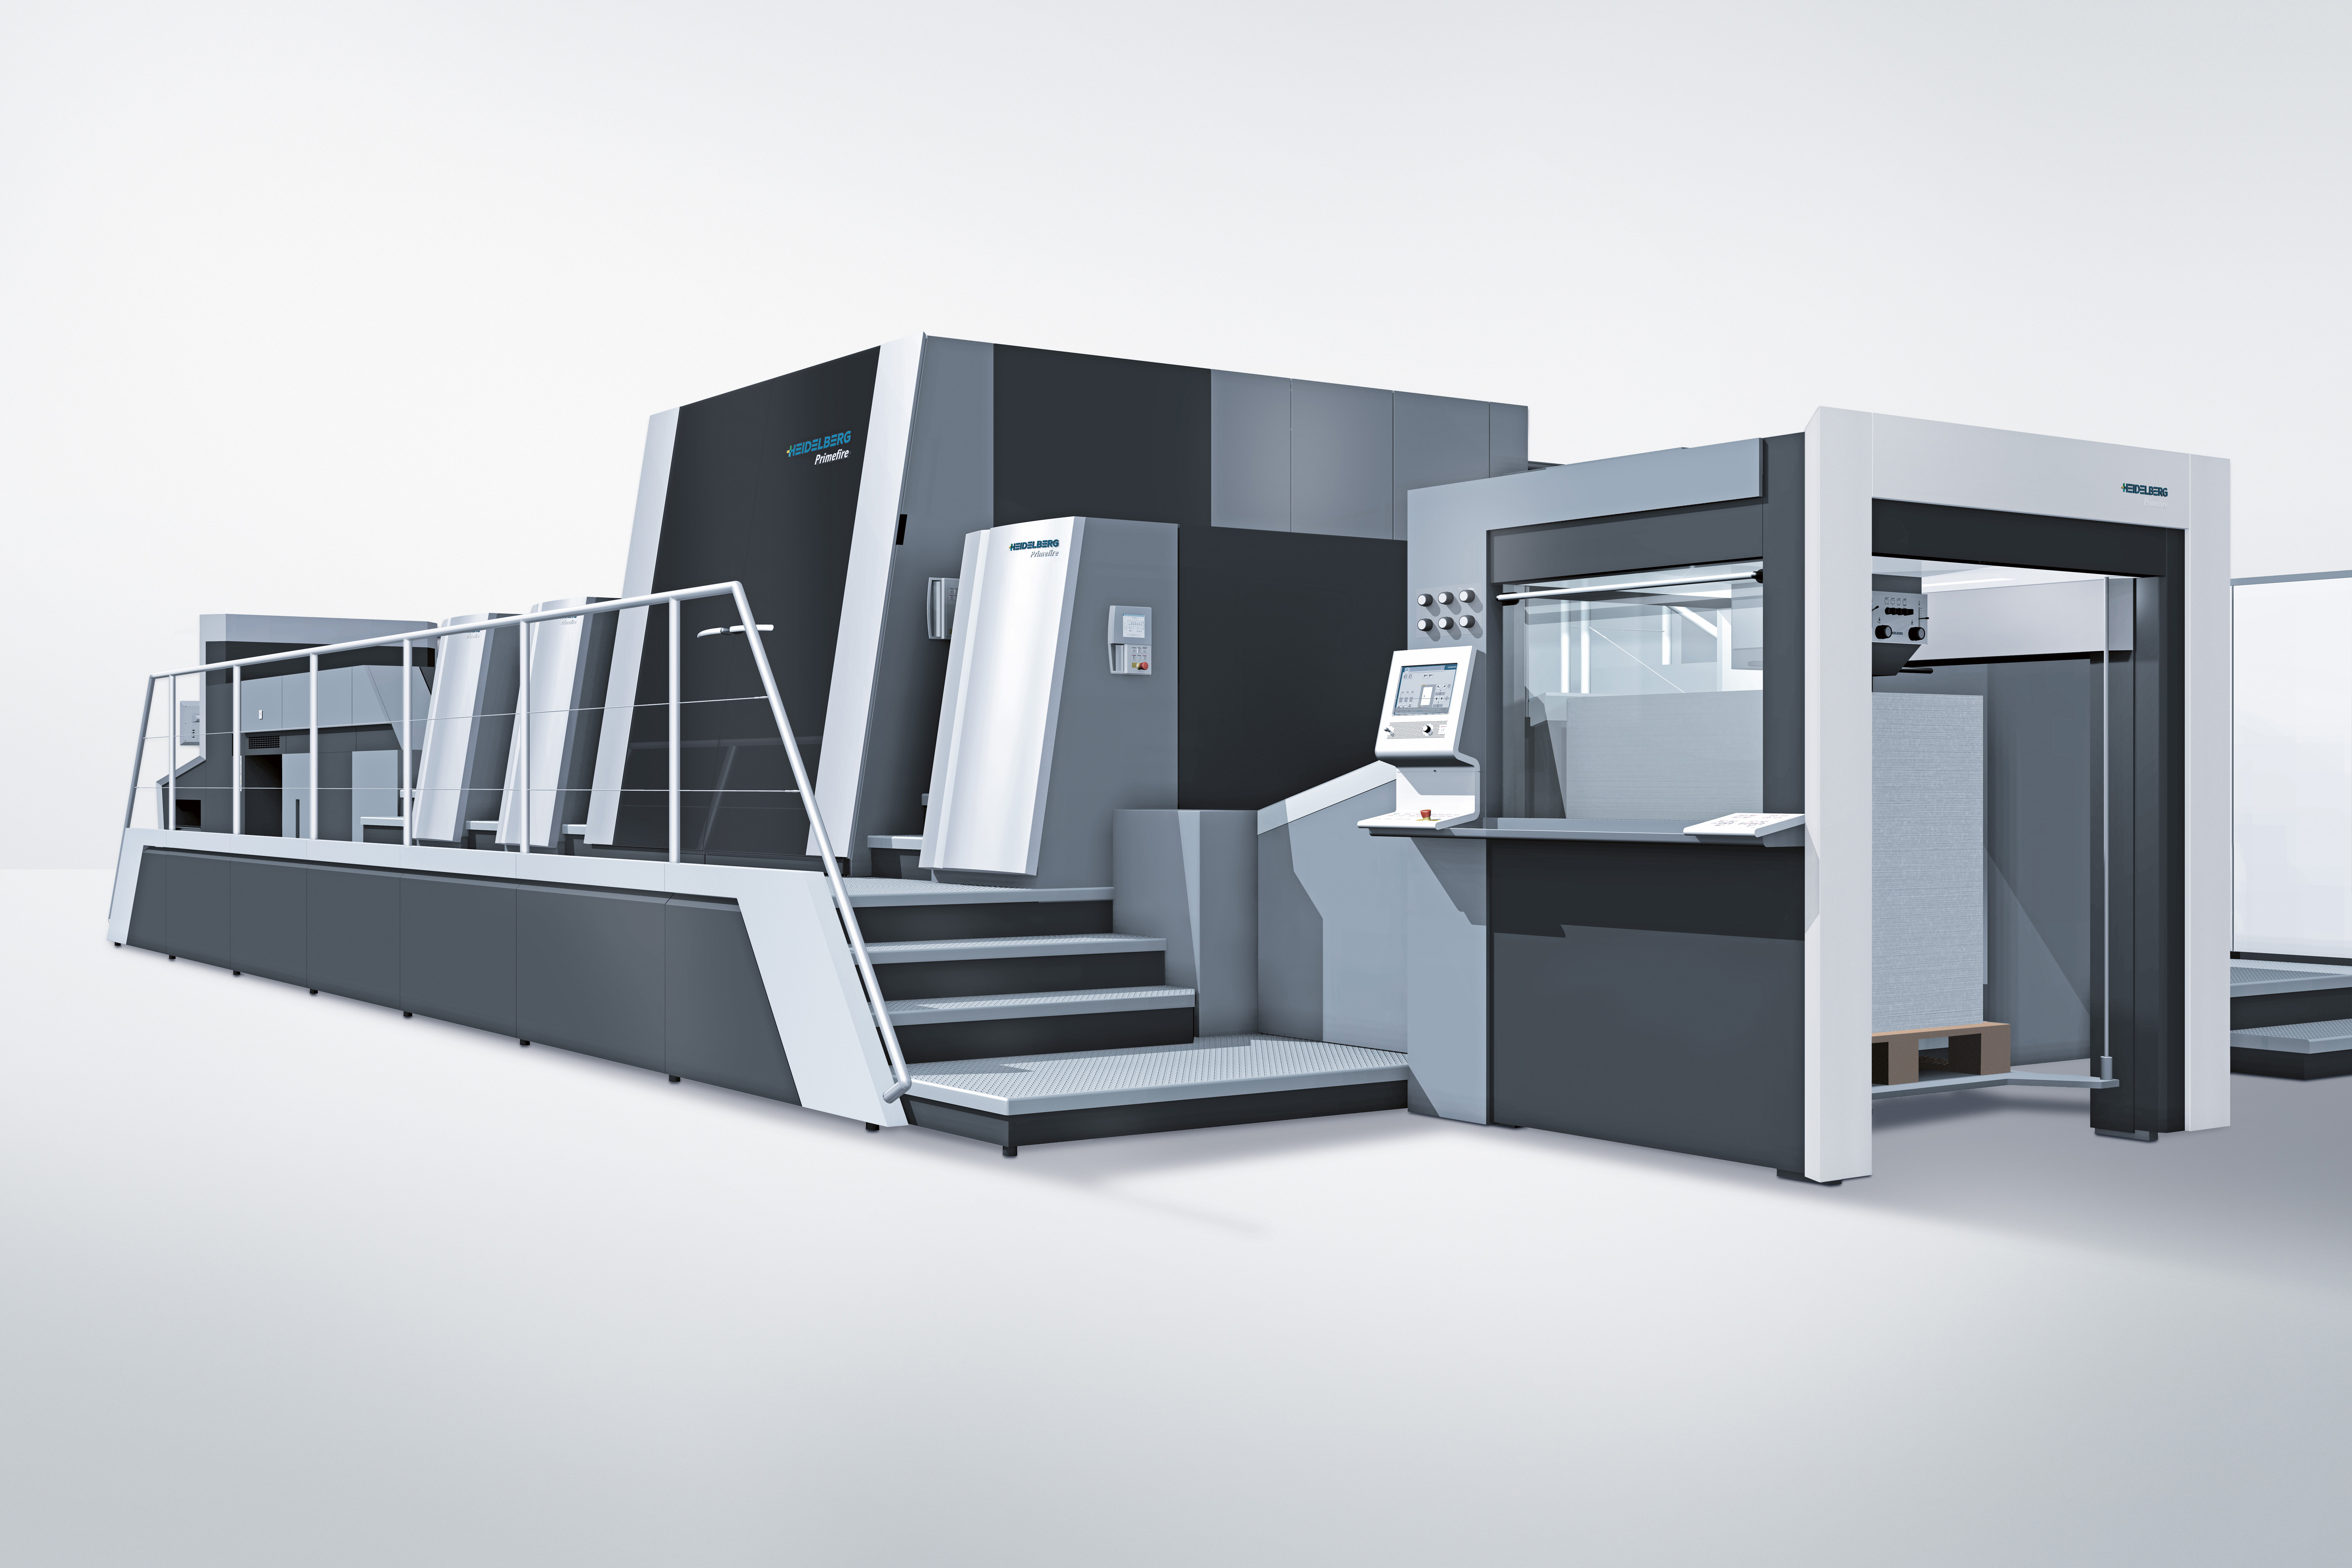 The Heidelberg Primefire 106 is the first industrial digital printing system in B1 format, the result of the development partnership between Heidelberg and Fujifilm